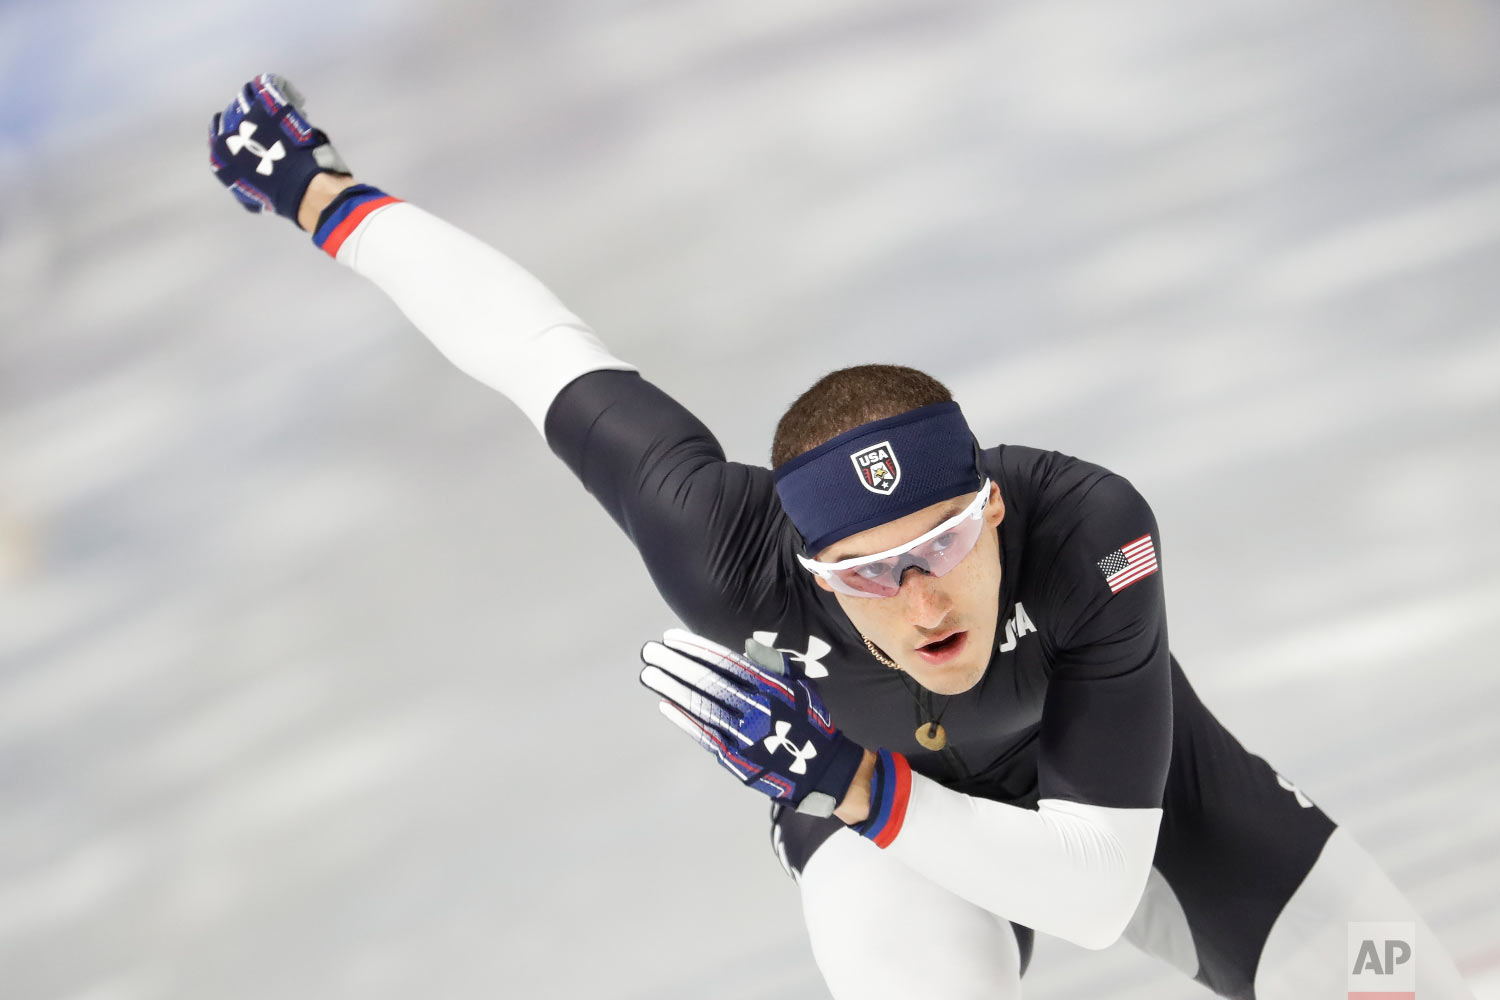 United States' Kimani Griffin skates during a Speed Skating training session prior to the 2018 Winter Olympics in Gangneung, South Korea, Monday, Feb. 5, 2018. (AP Photo/Felipe Dana)